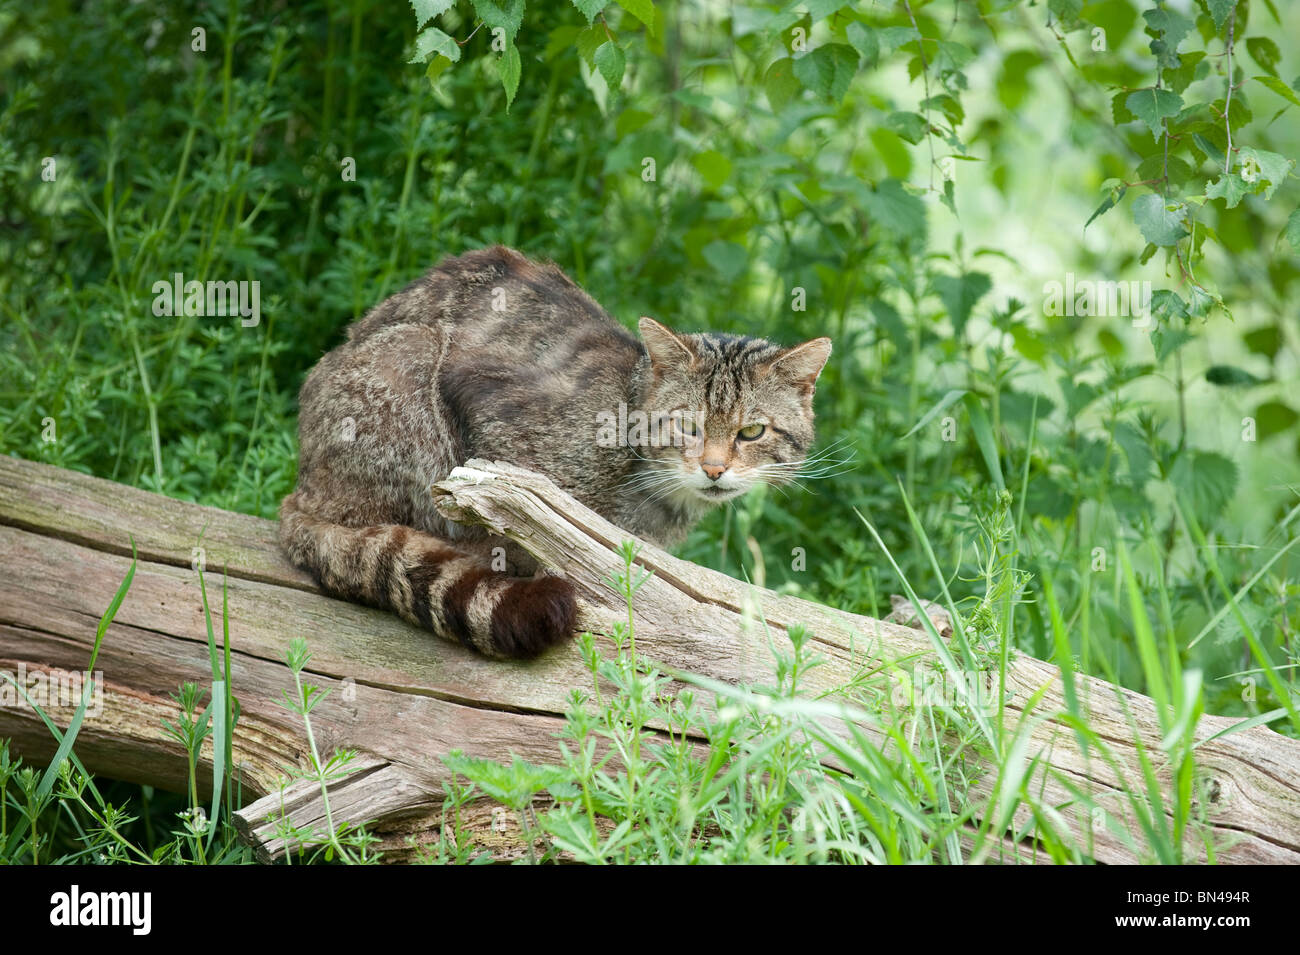 British wild cat, now only found in the wild in Scotland - Stock Image